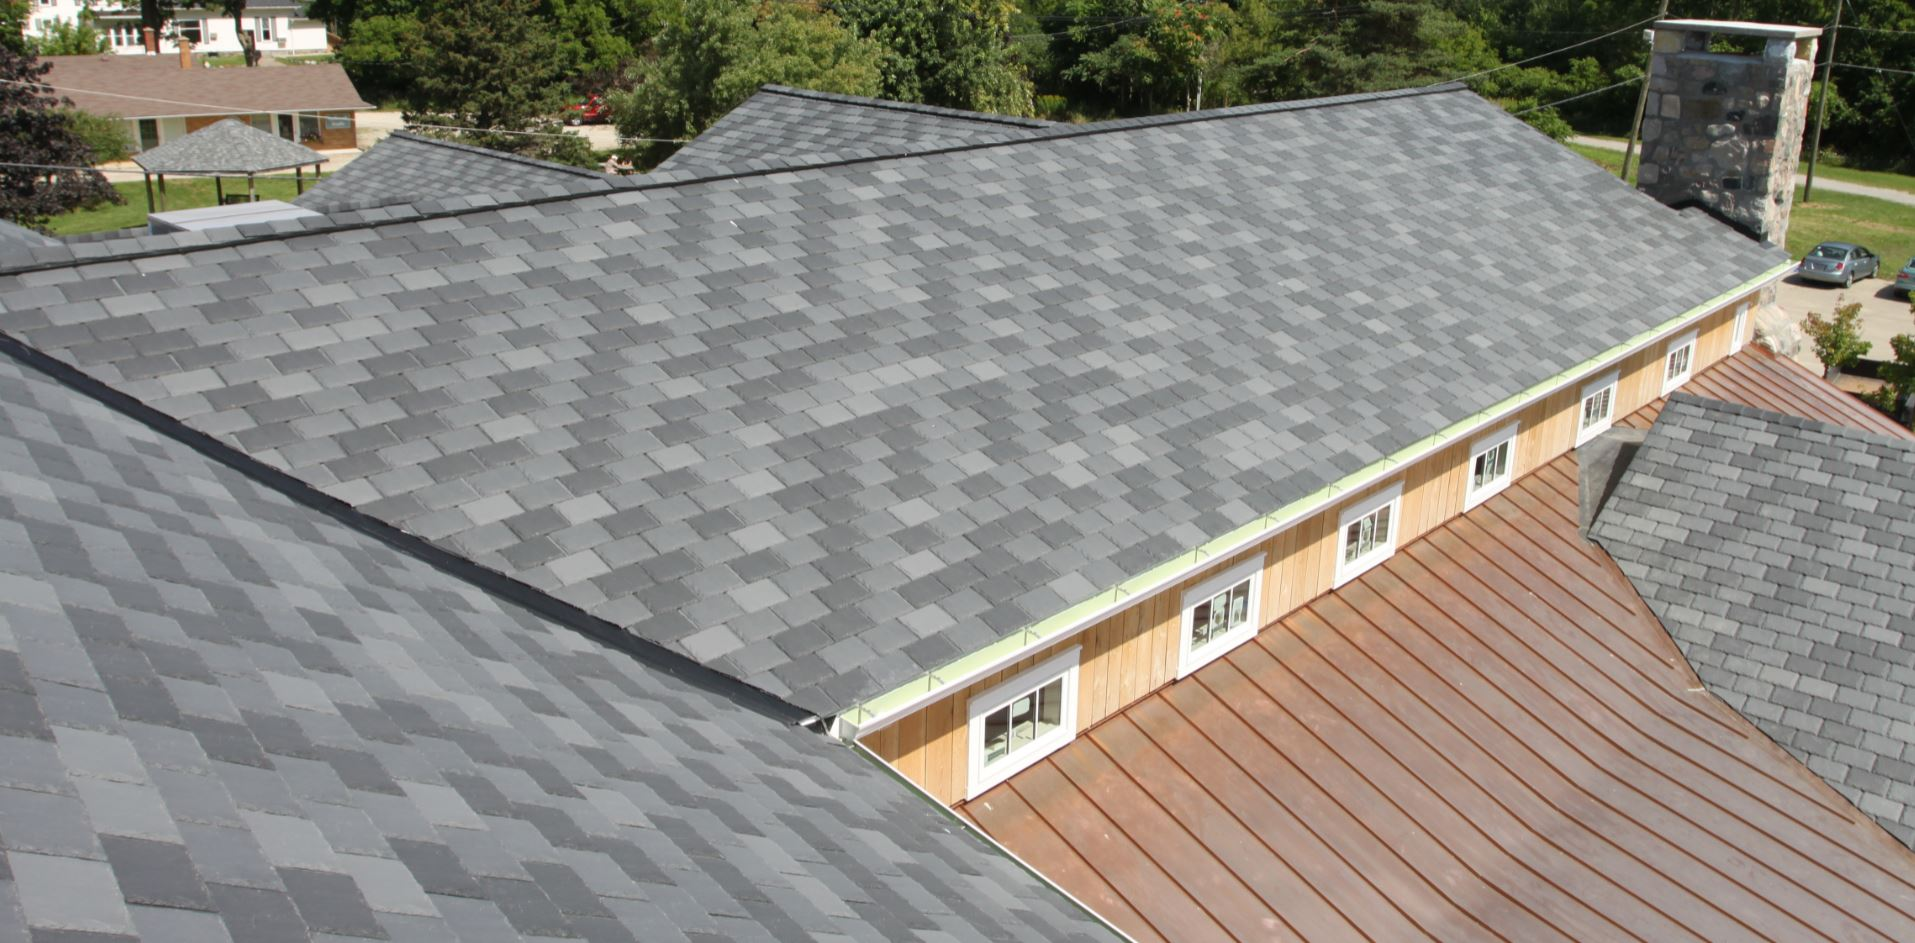 Fiberglass Slate Roof : Composite slate roofing achieves historic look for rehab